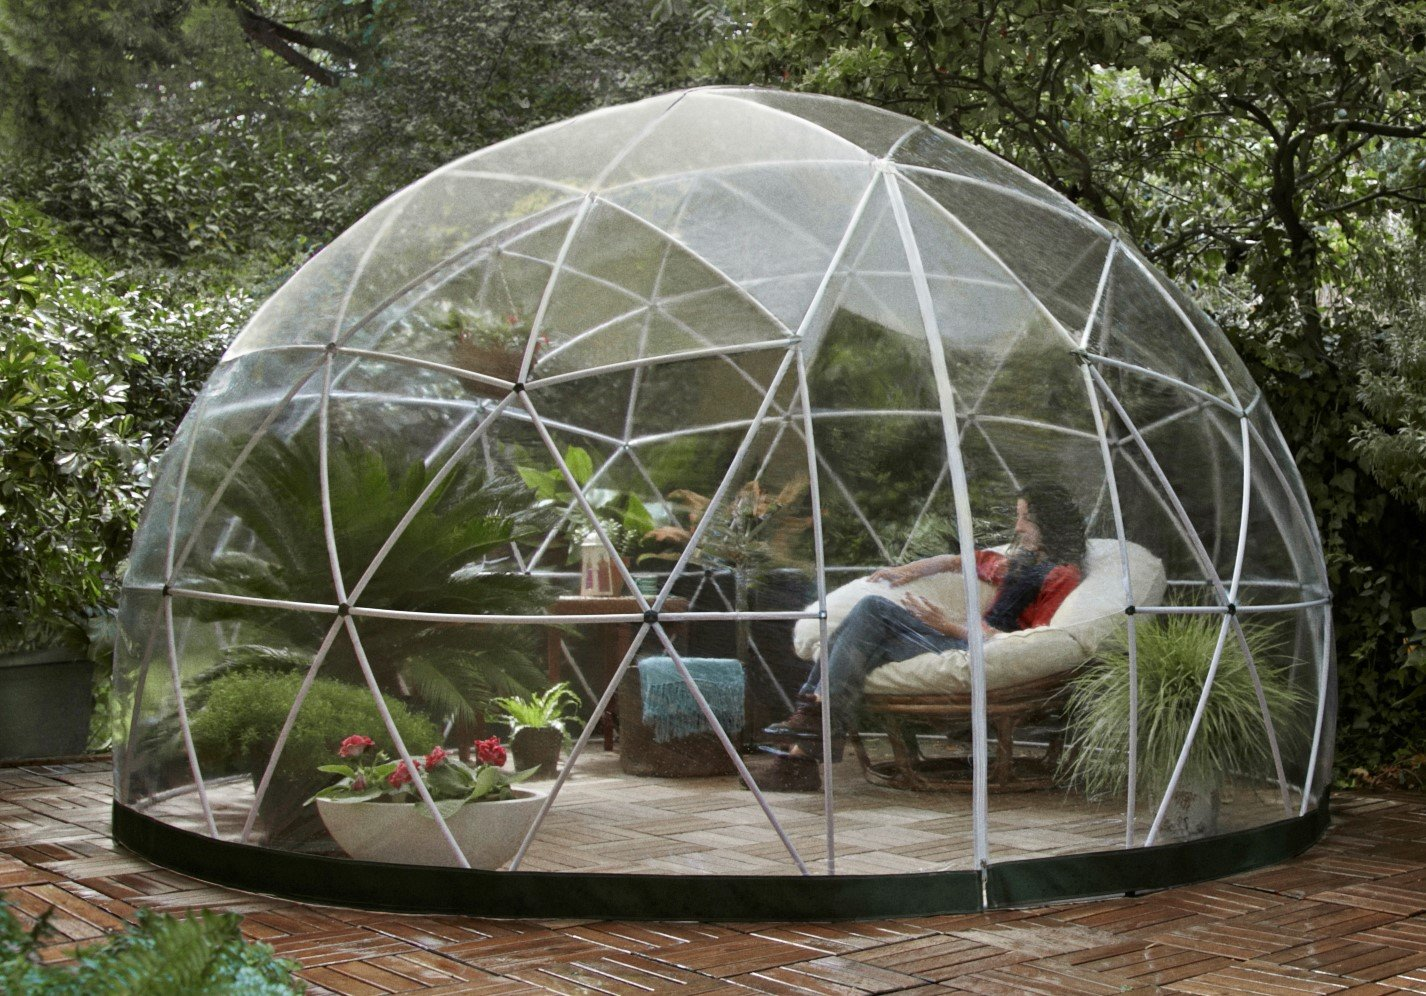 Garden Igloo 33244 Clear Greenhouse 142 X 142 X 87 inches 1